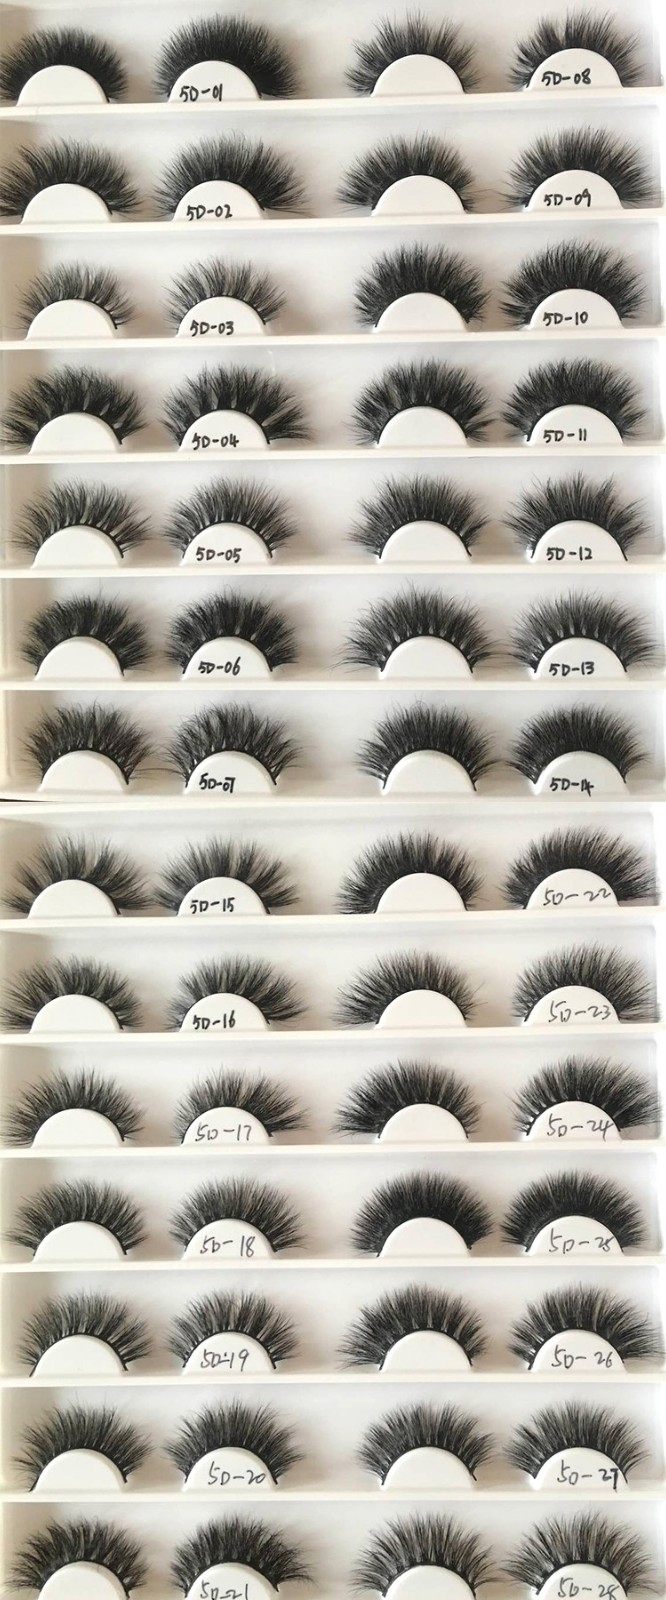 wholesale 5d real mink fur eyelashes wholesale China.jpg